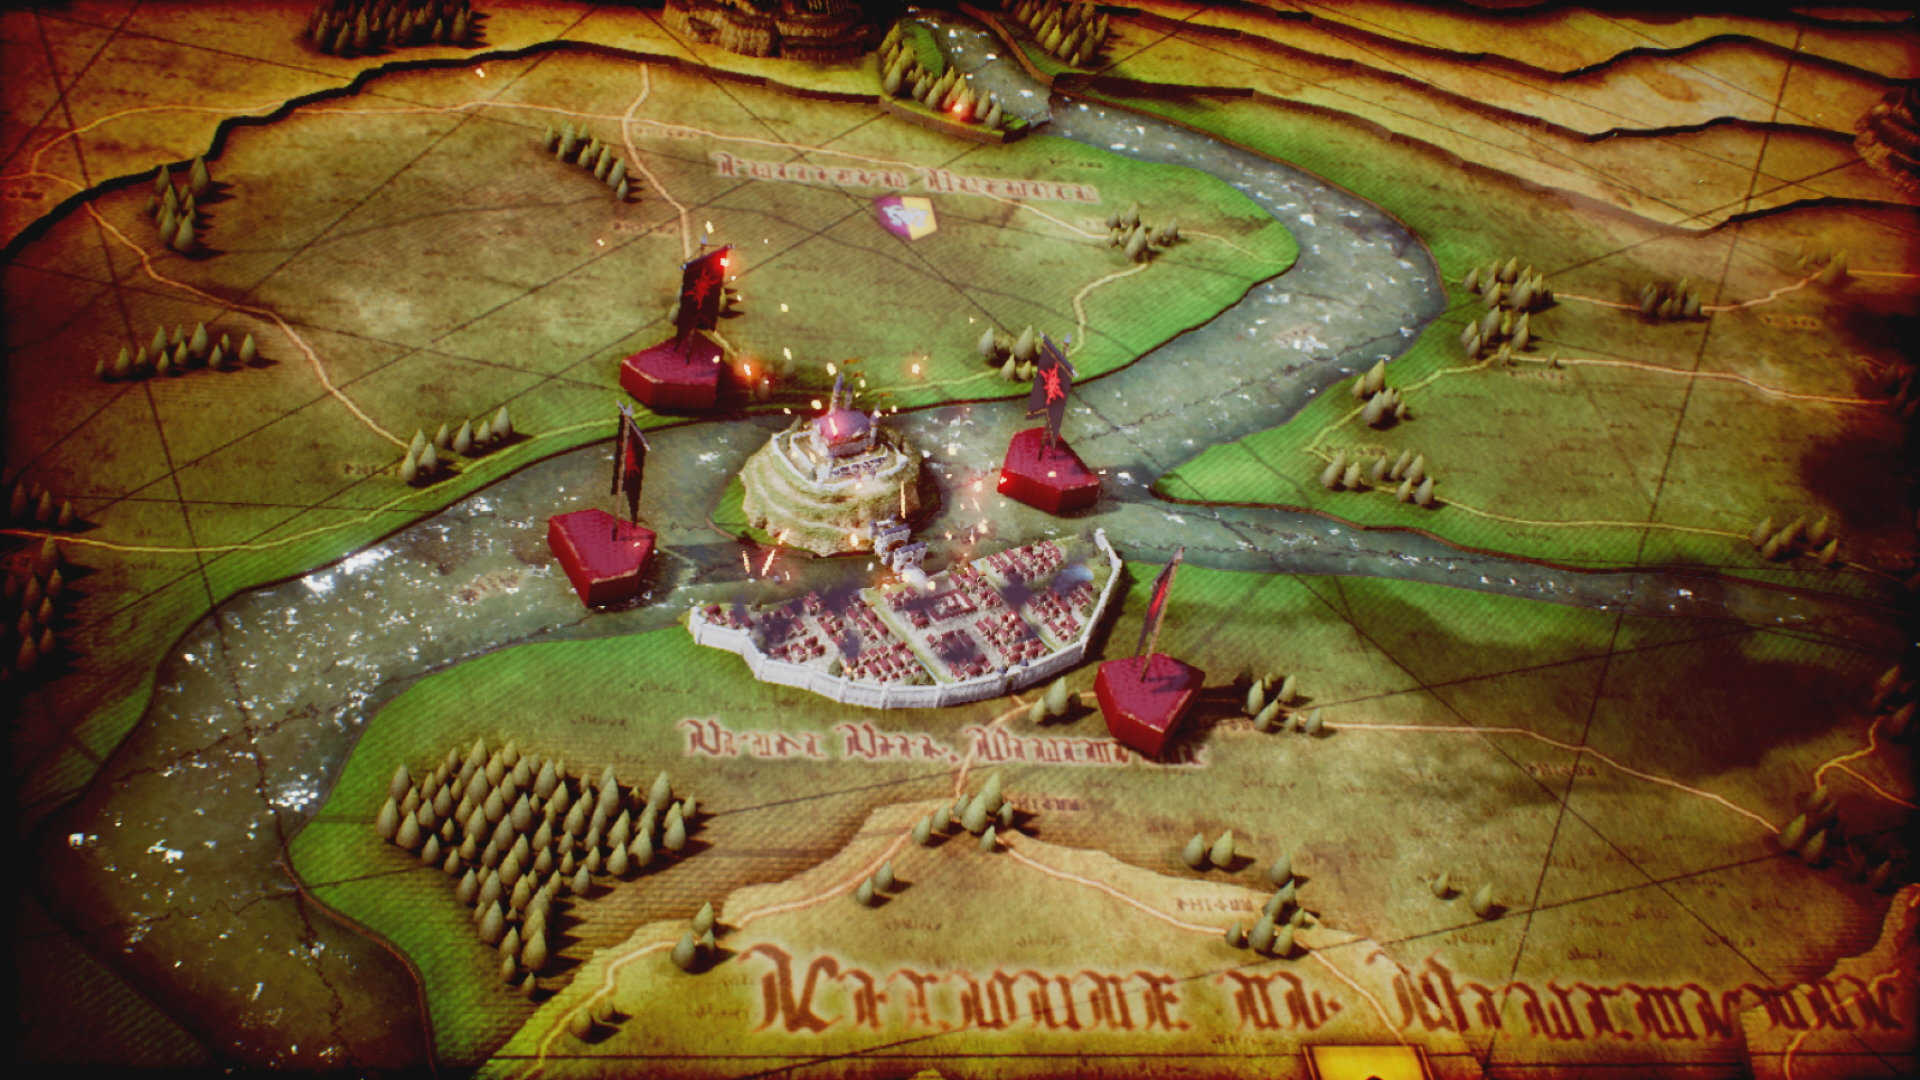 A map screen with a large walled city.